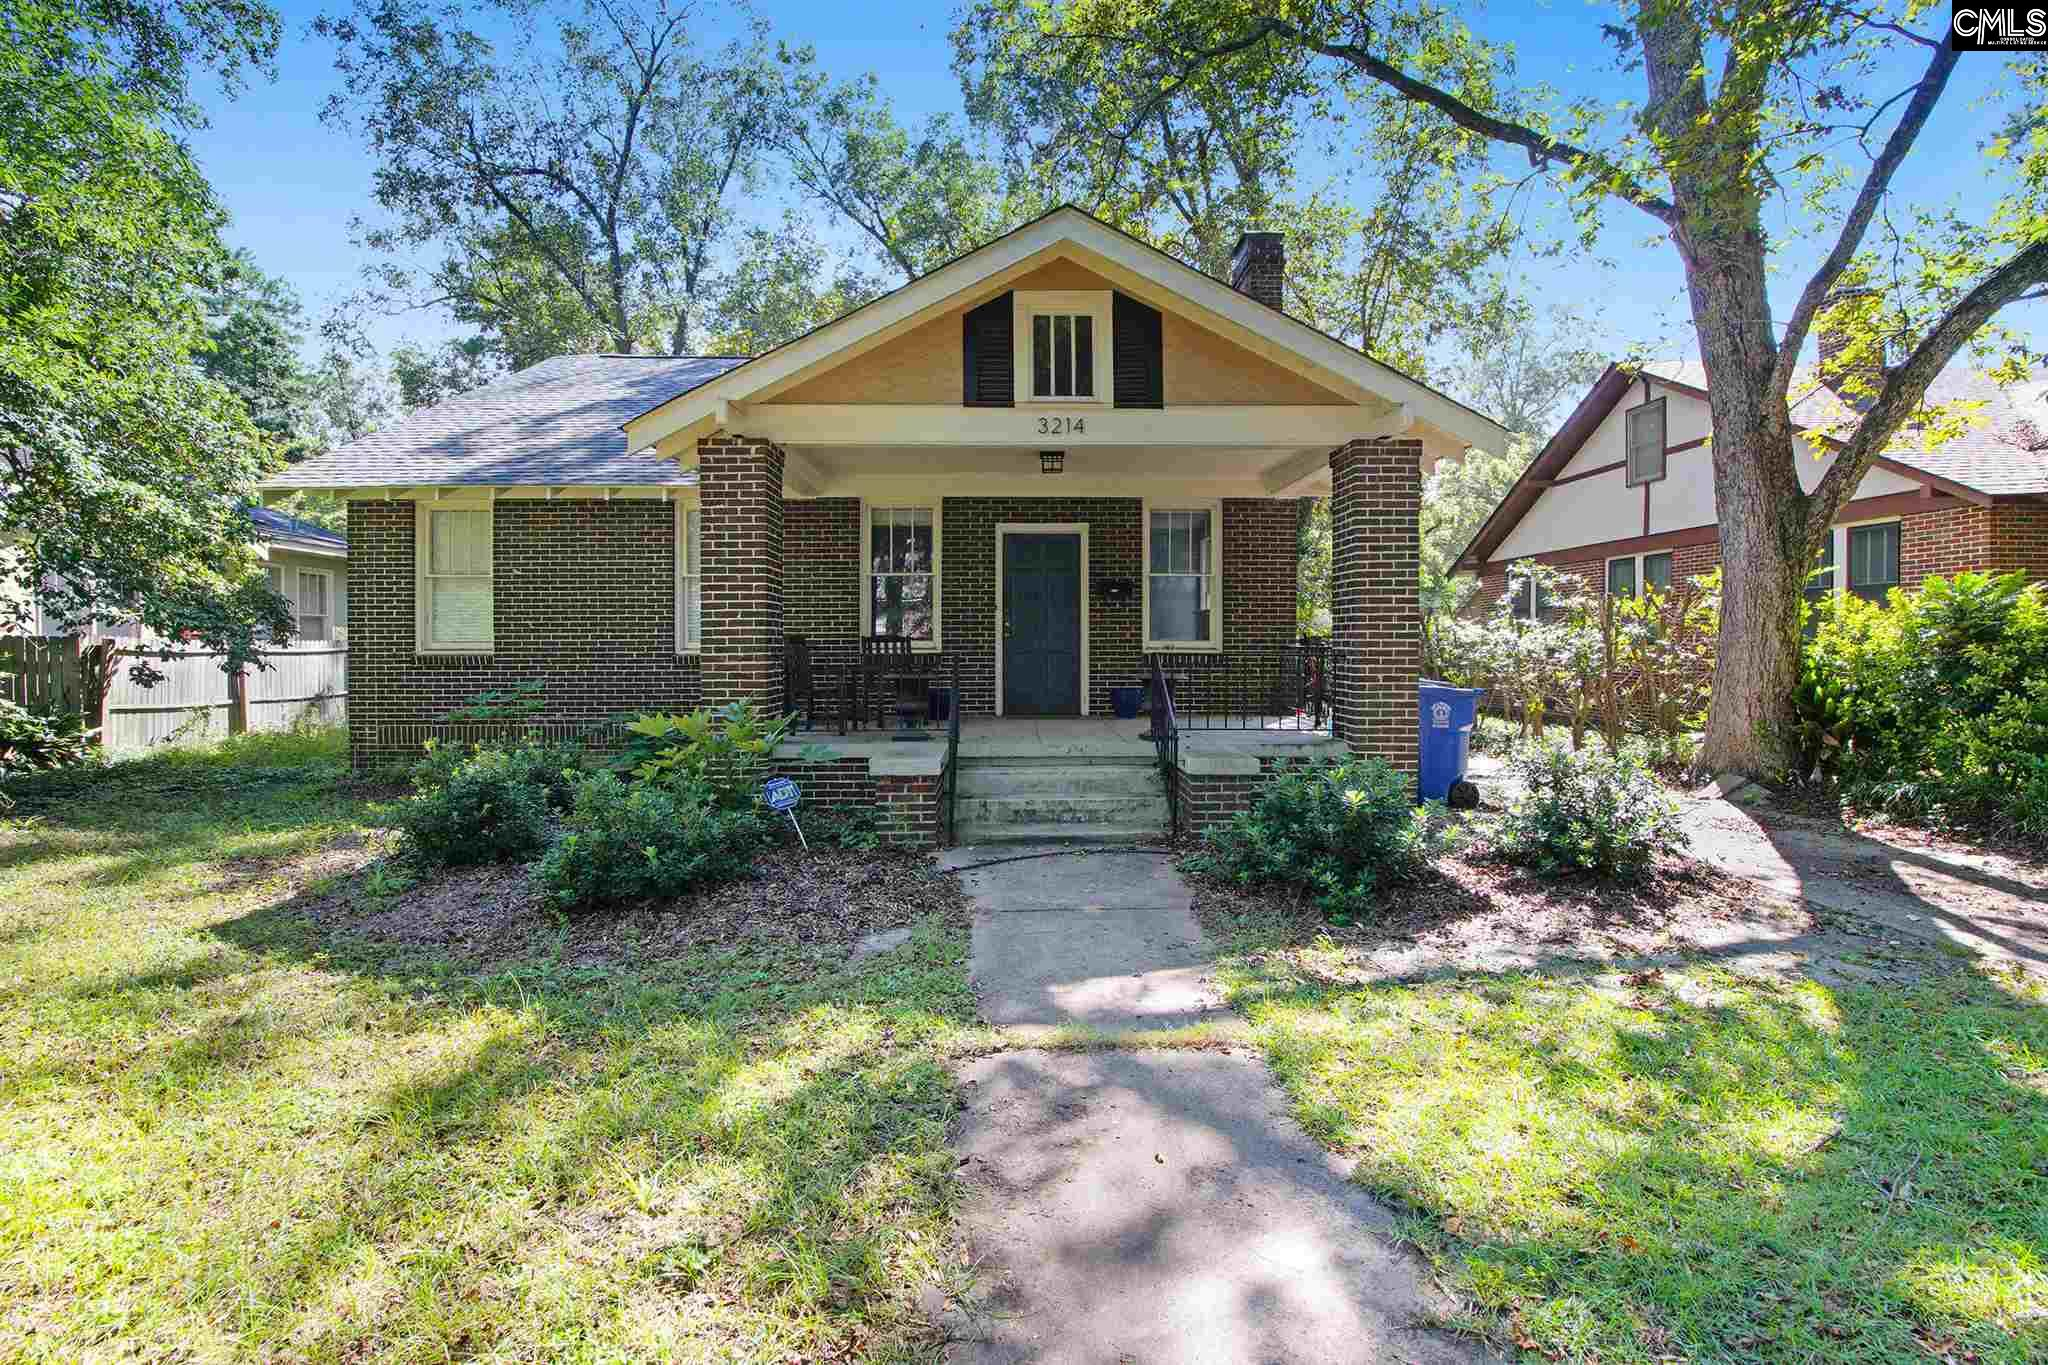 3214 Murray Columbia, SC 29205